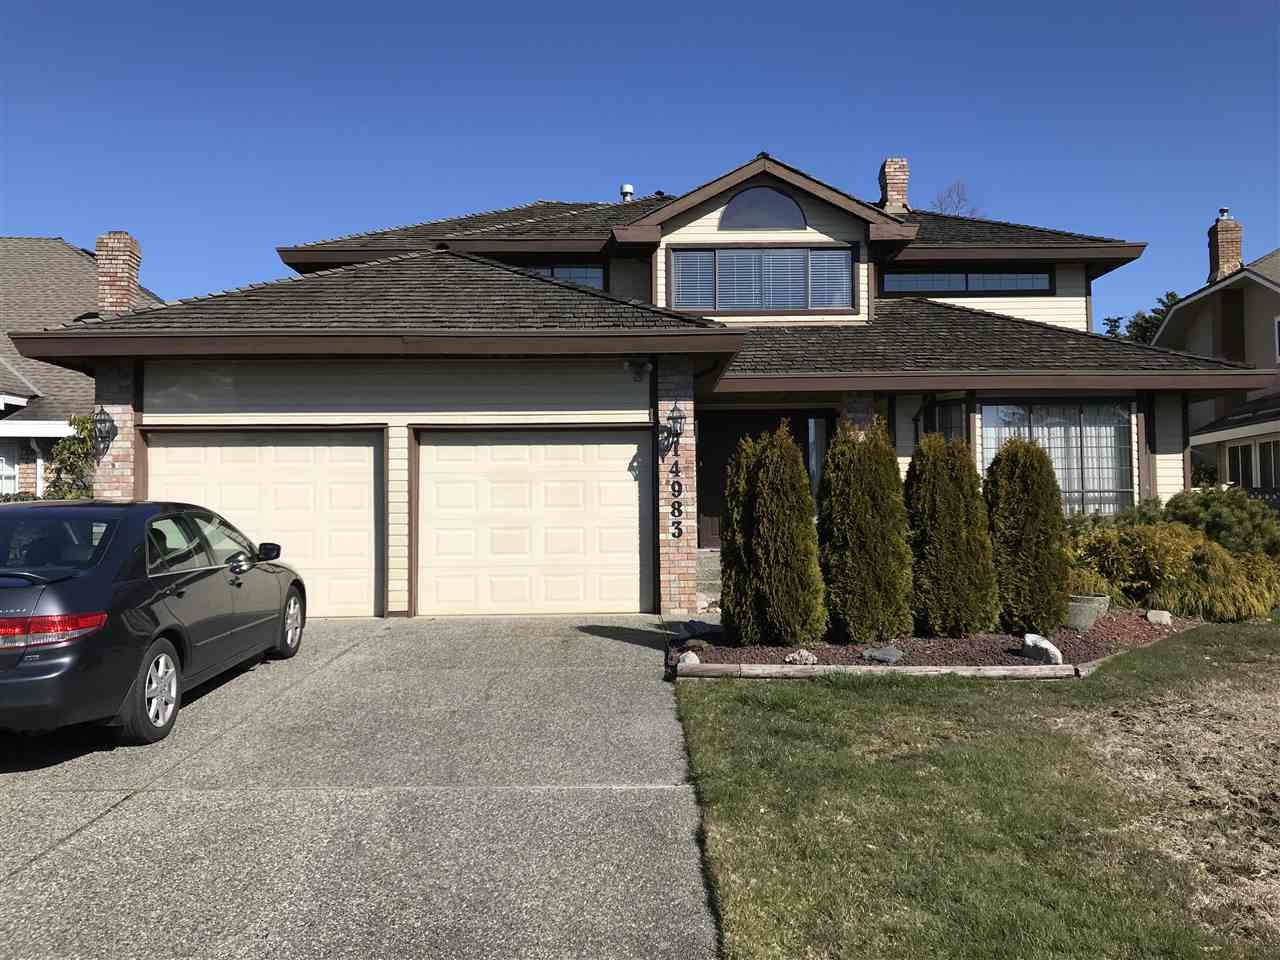 """Main Photo: 14983 21 Avenue in Surrey: Sunnyside Park Surrey House for sale in """"Meridian by the Sea"""" (South Surrey White Rock)  : MLS®# R2447356"""